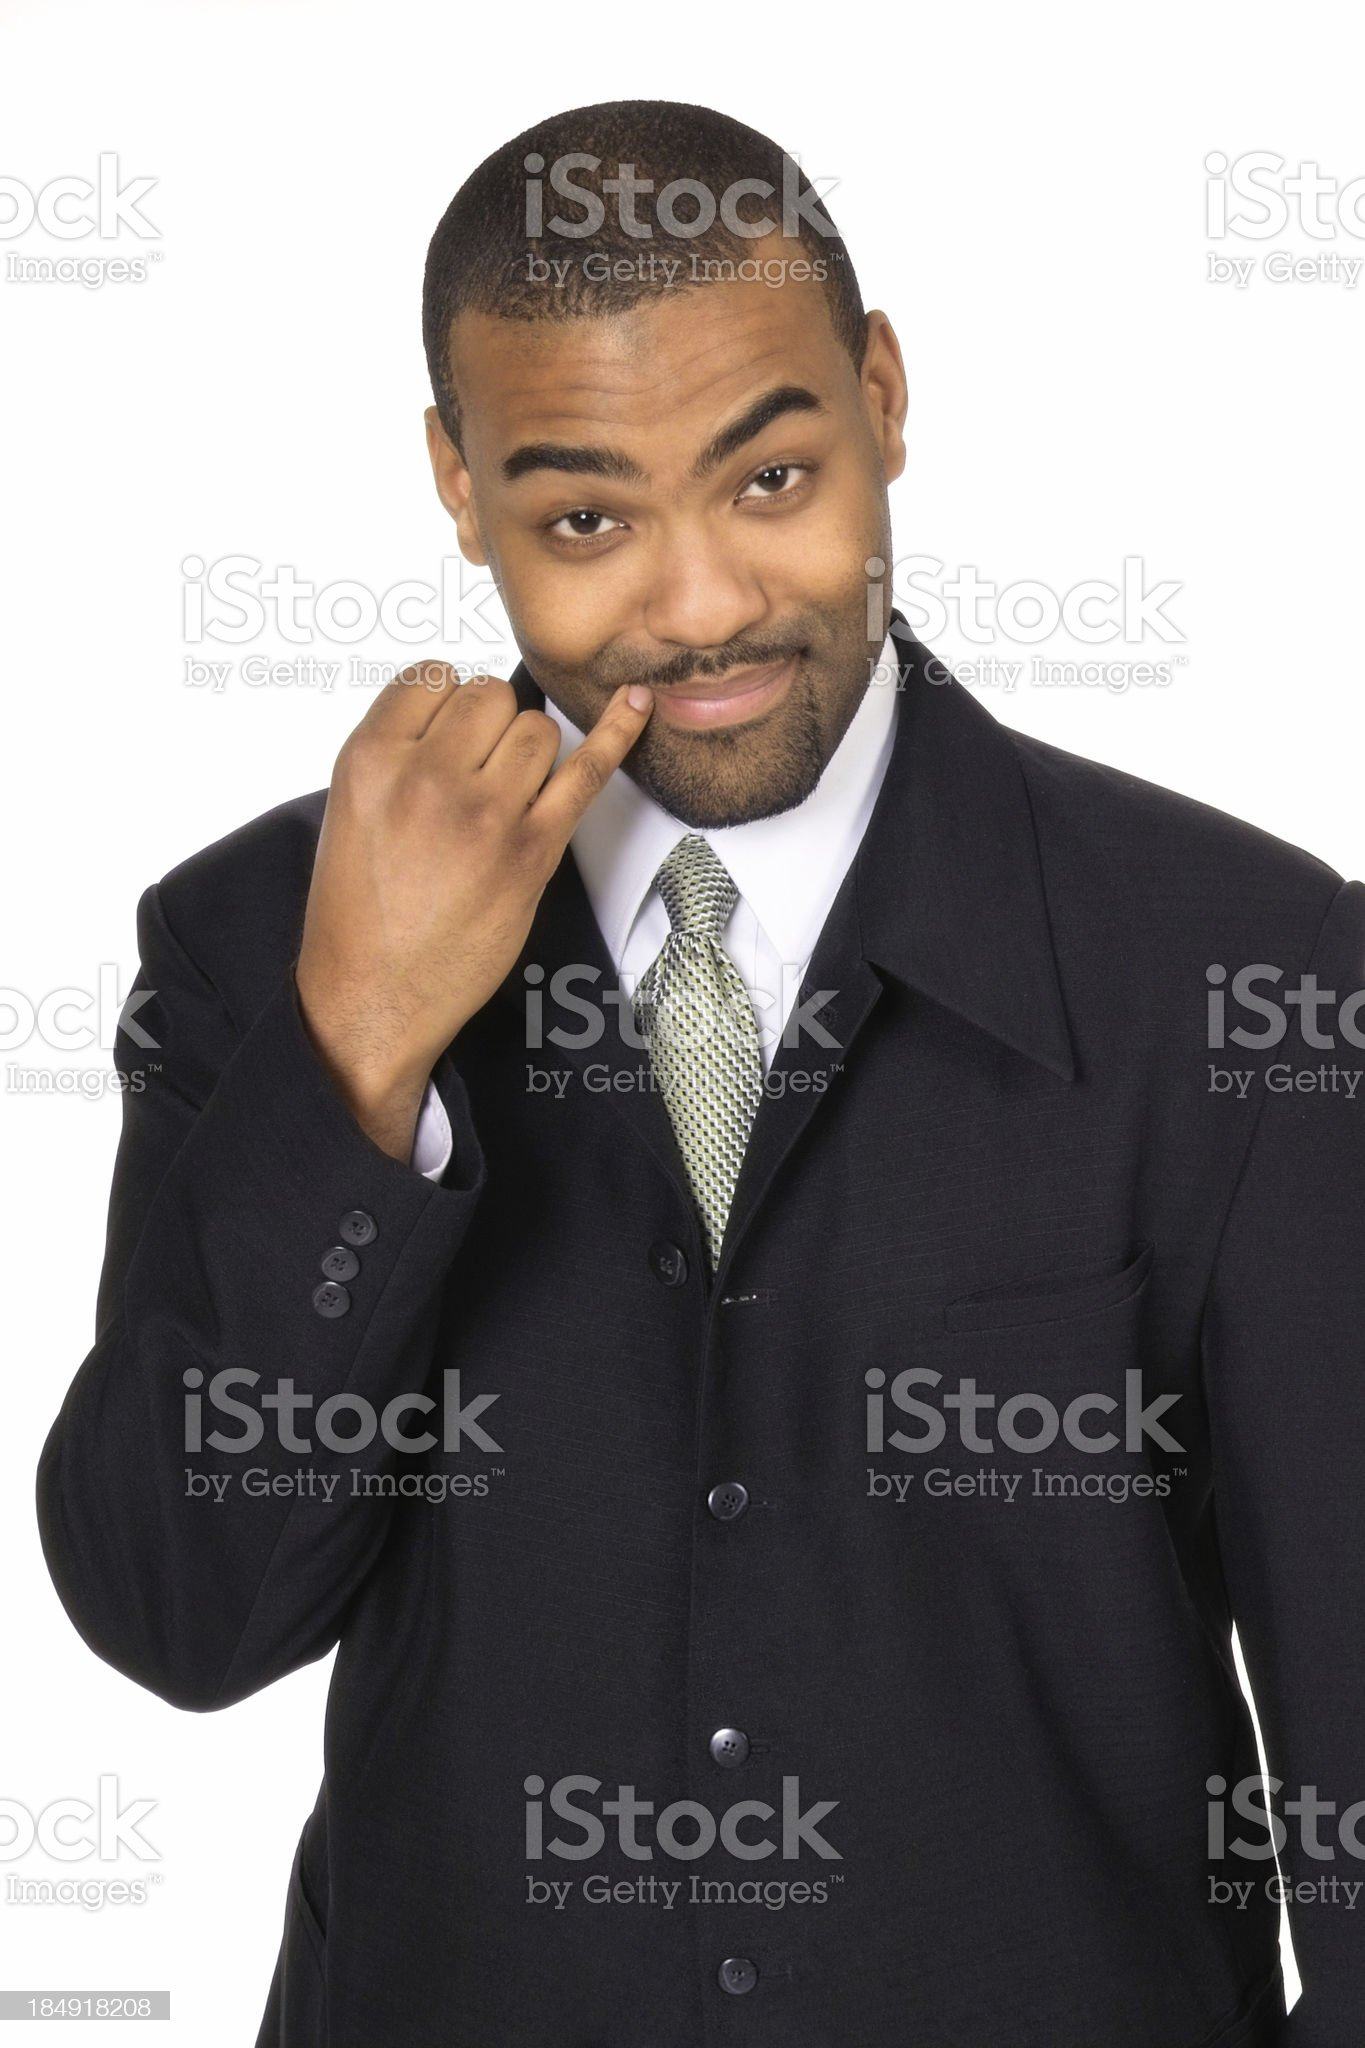 Evil Businessman royalty-free stock photo